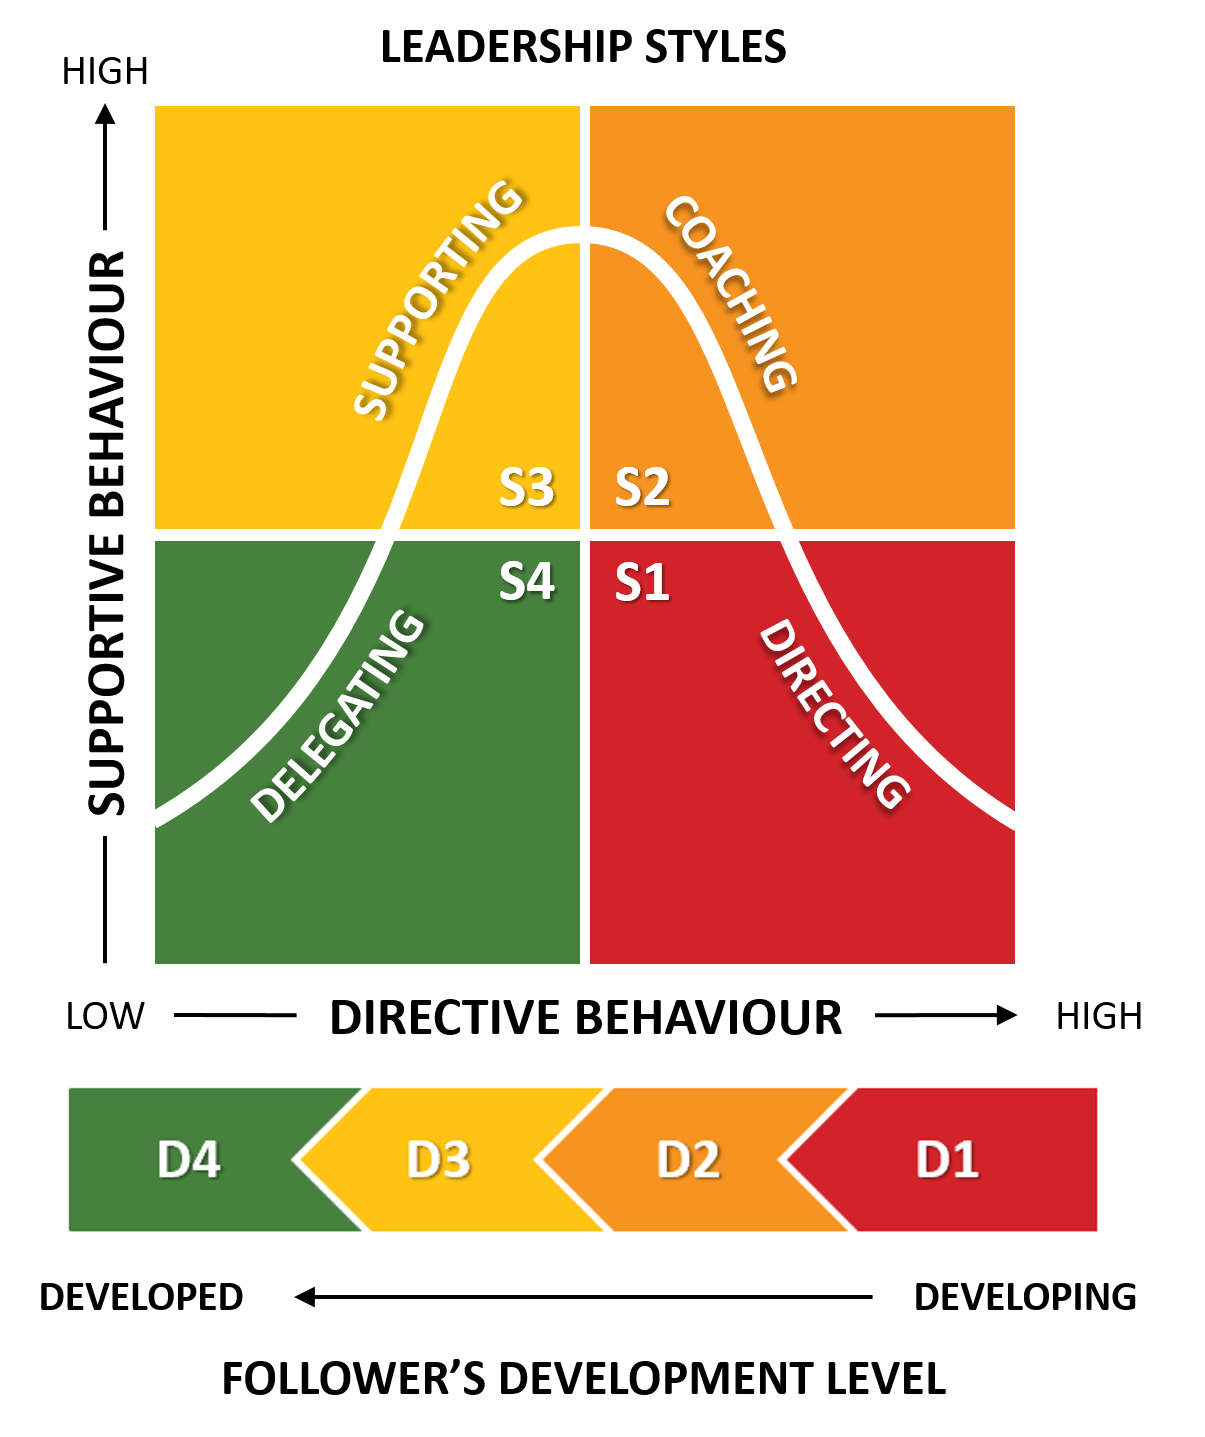 Hersey And Blanchard Situational Leadership Model Explained B2u